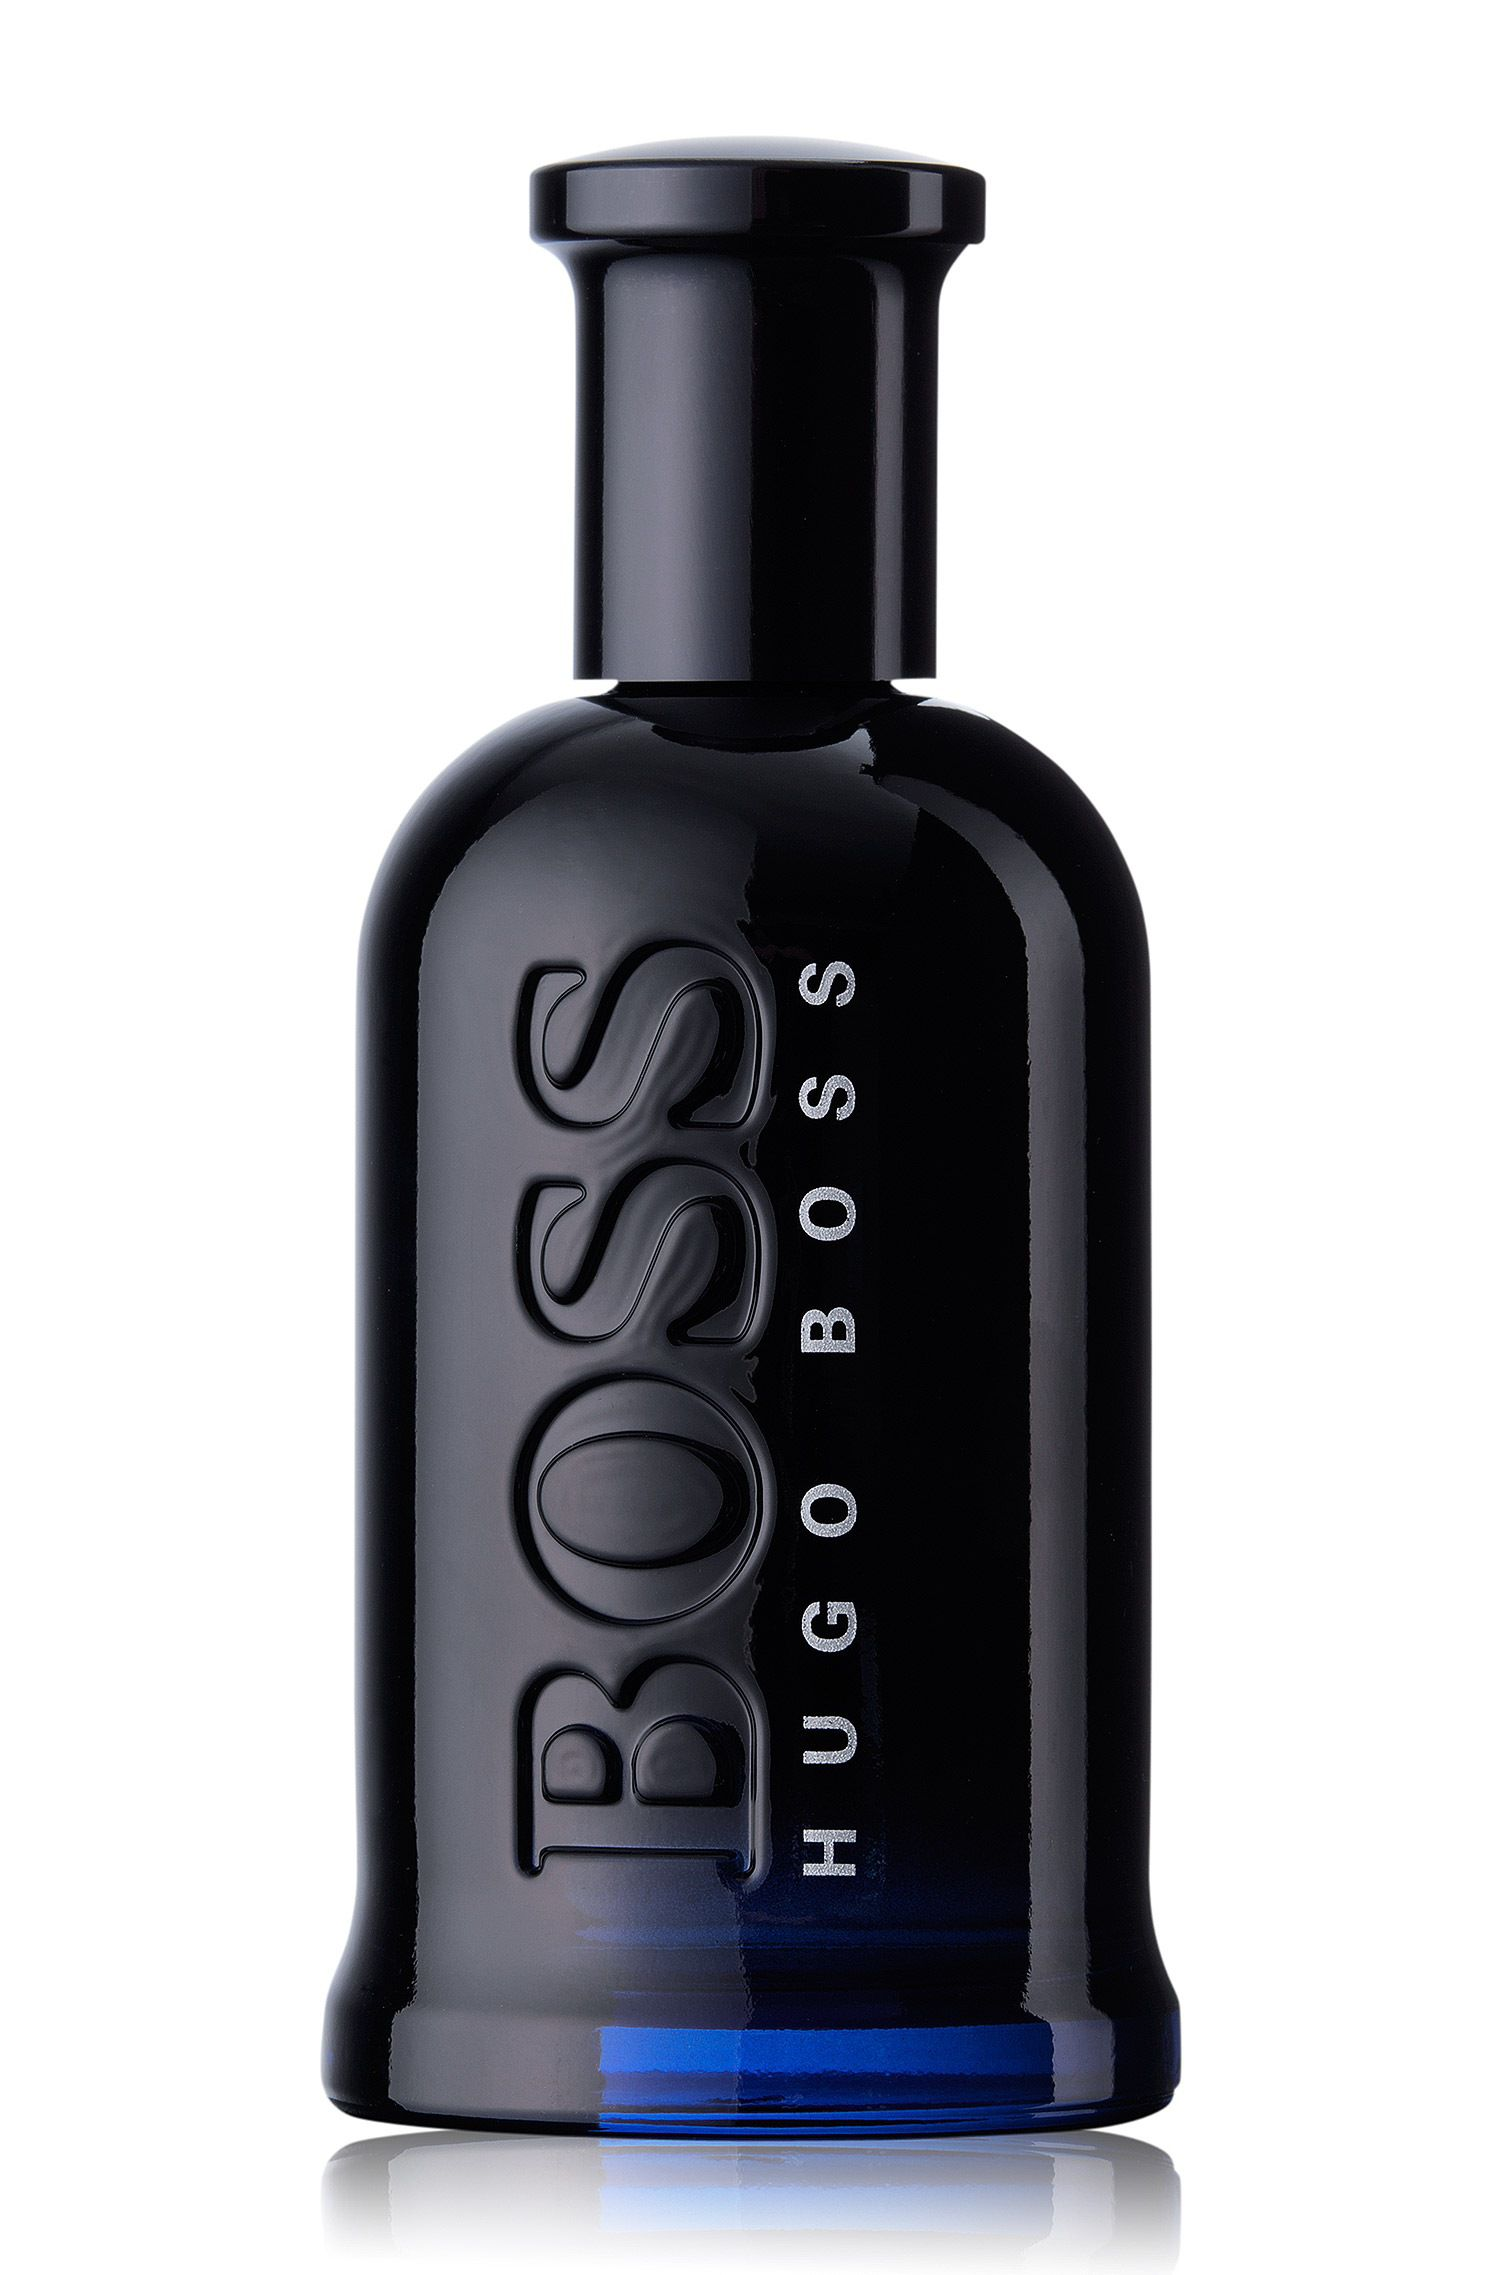 Lozione dopobarba BOSS Bottled Night da 100 ml